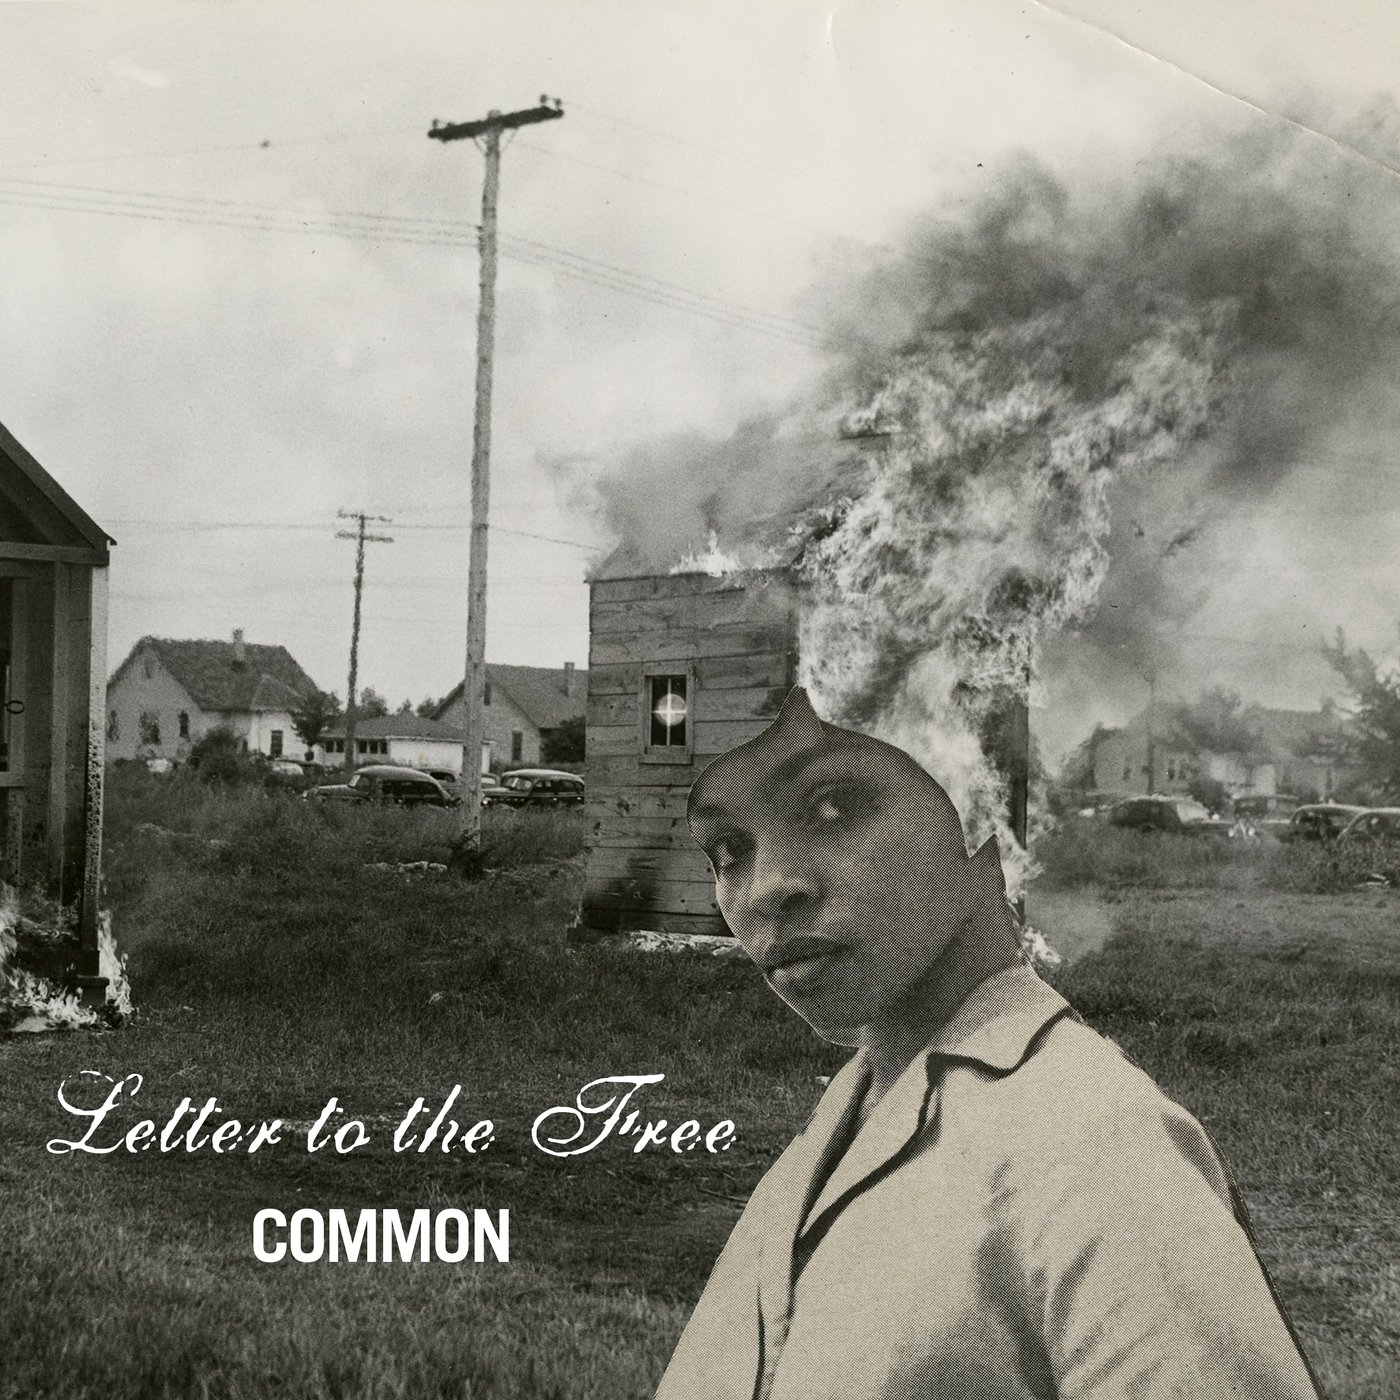 Common – Letter to the Free